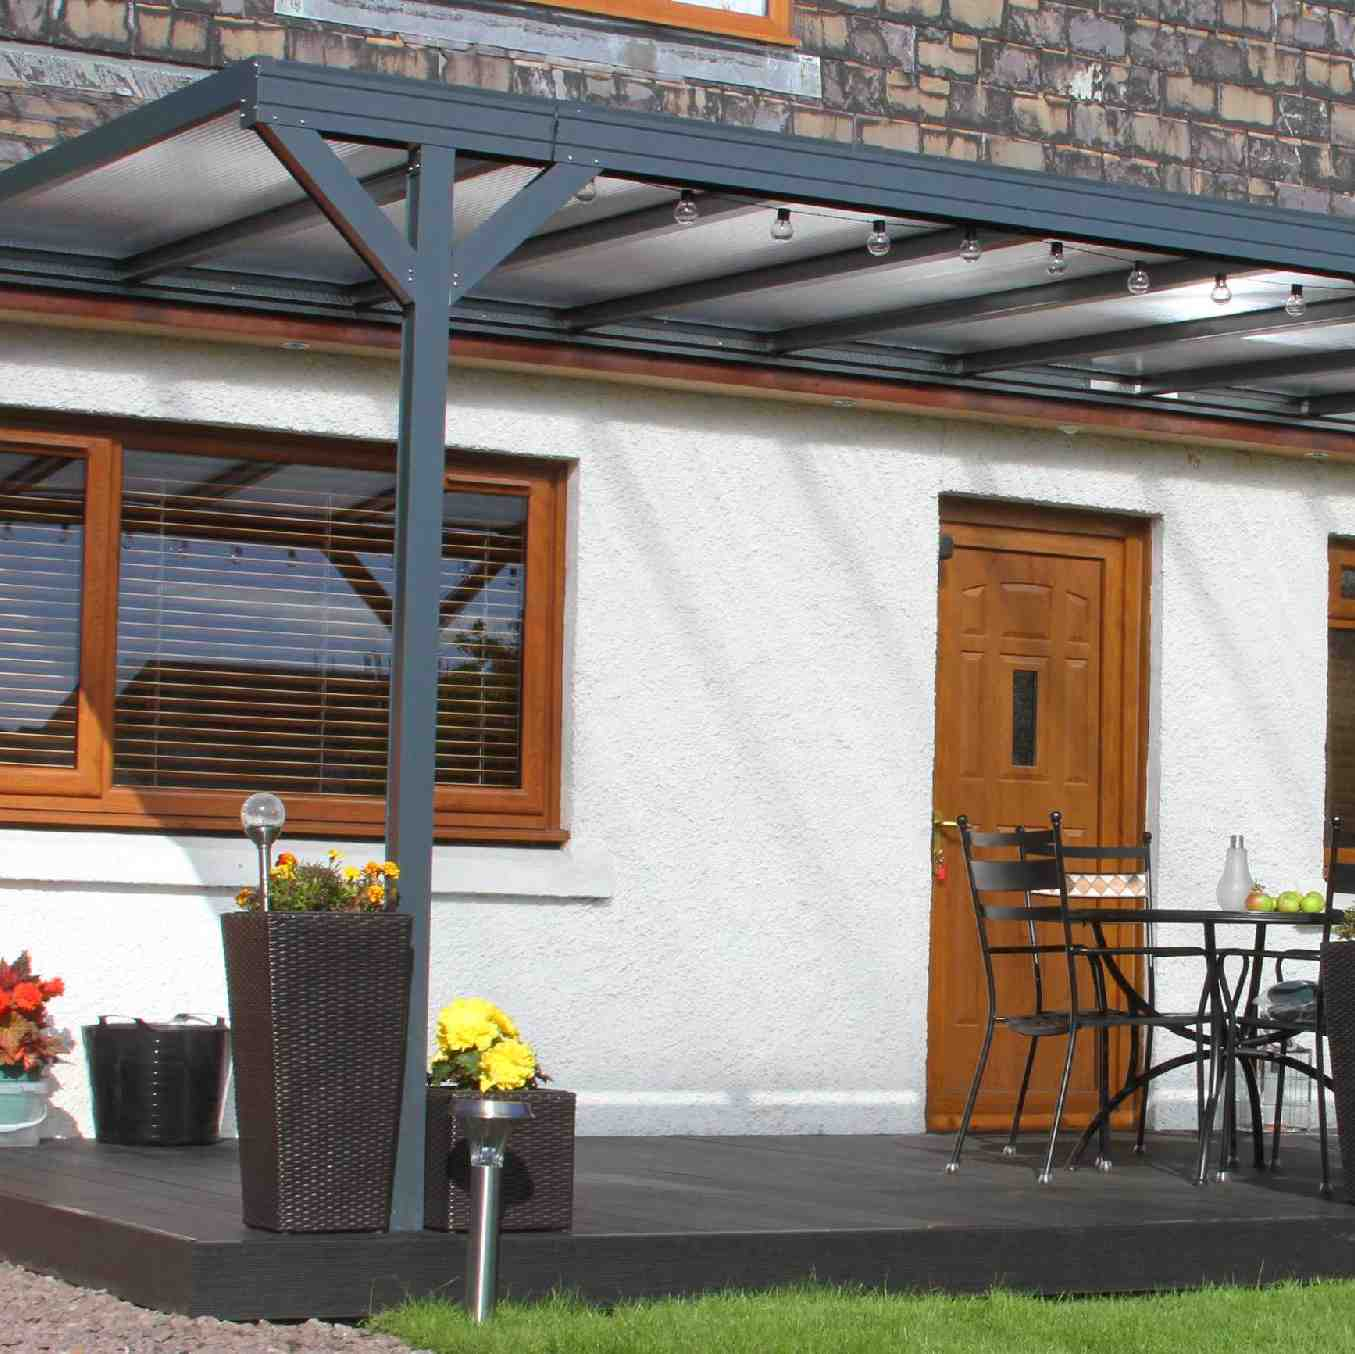 Omega Verandah, Anthracite Grey, 6mm Glass Clear Plate Polycarbonate Glazing - 8.4m (W) x 2.0m (P), (4) Supporting Posts